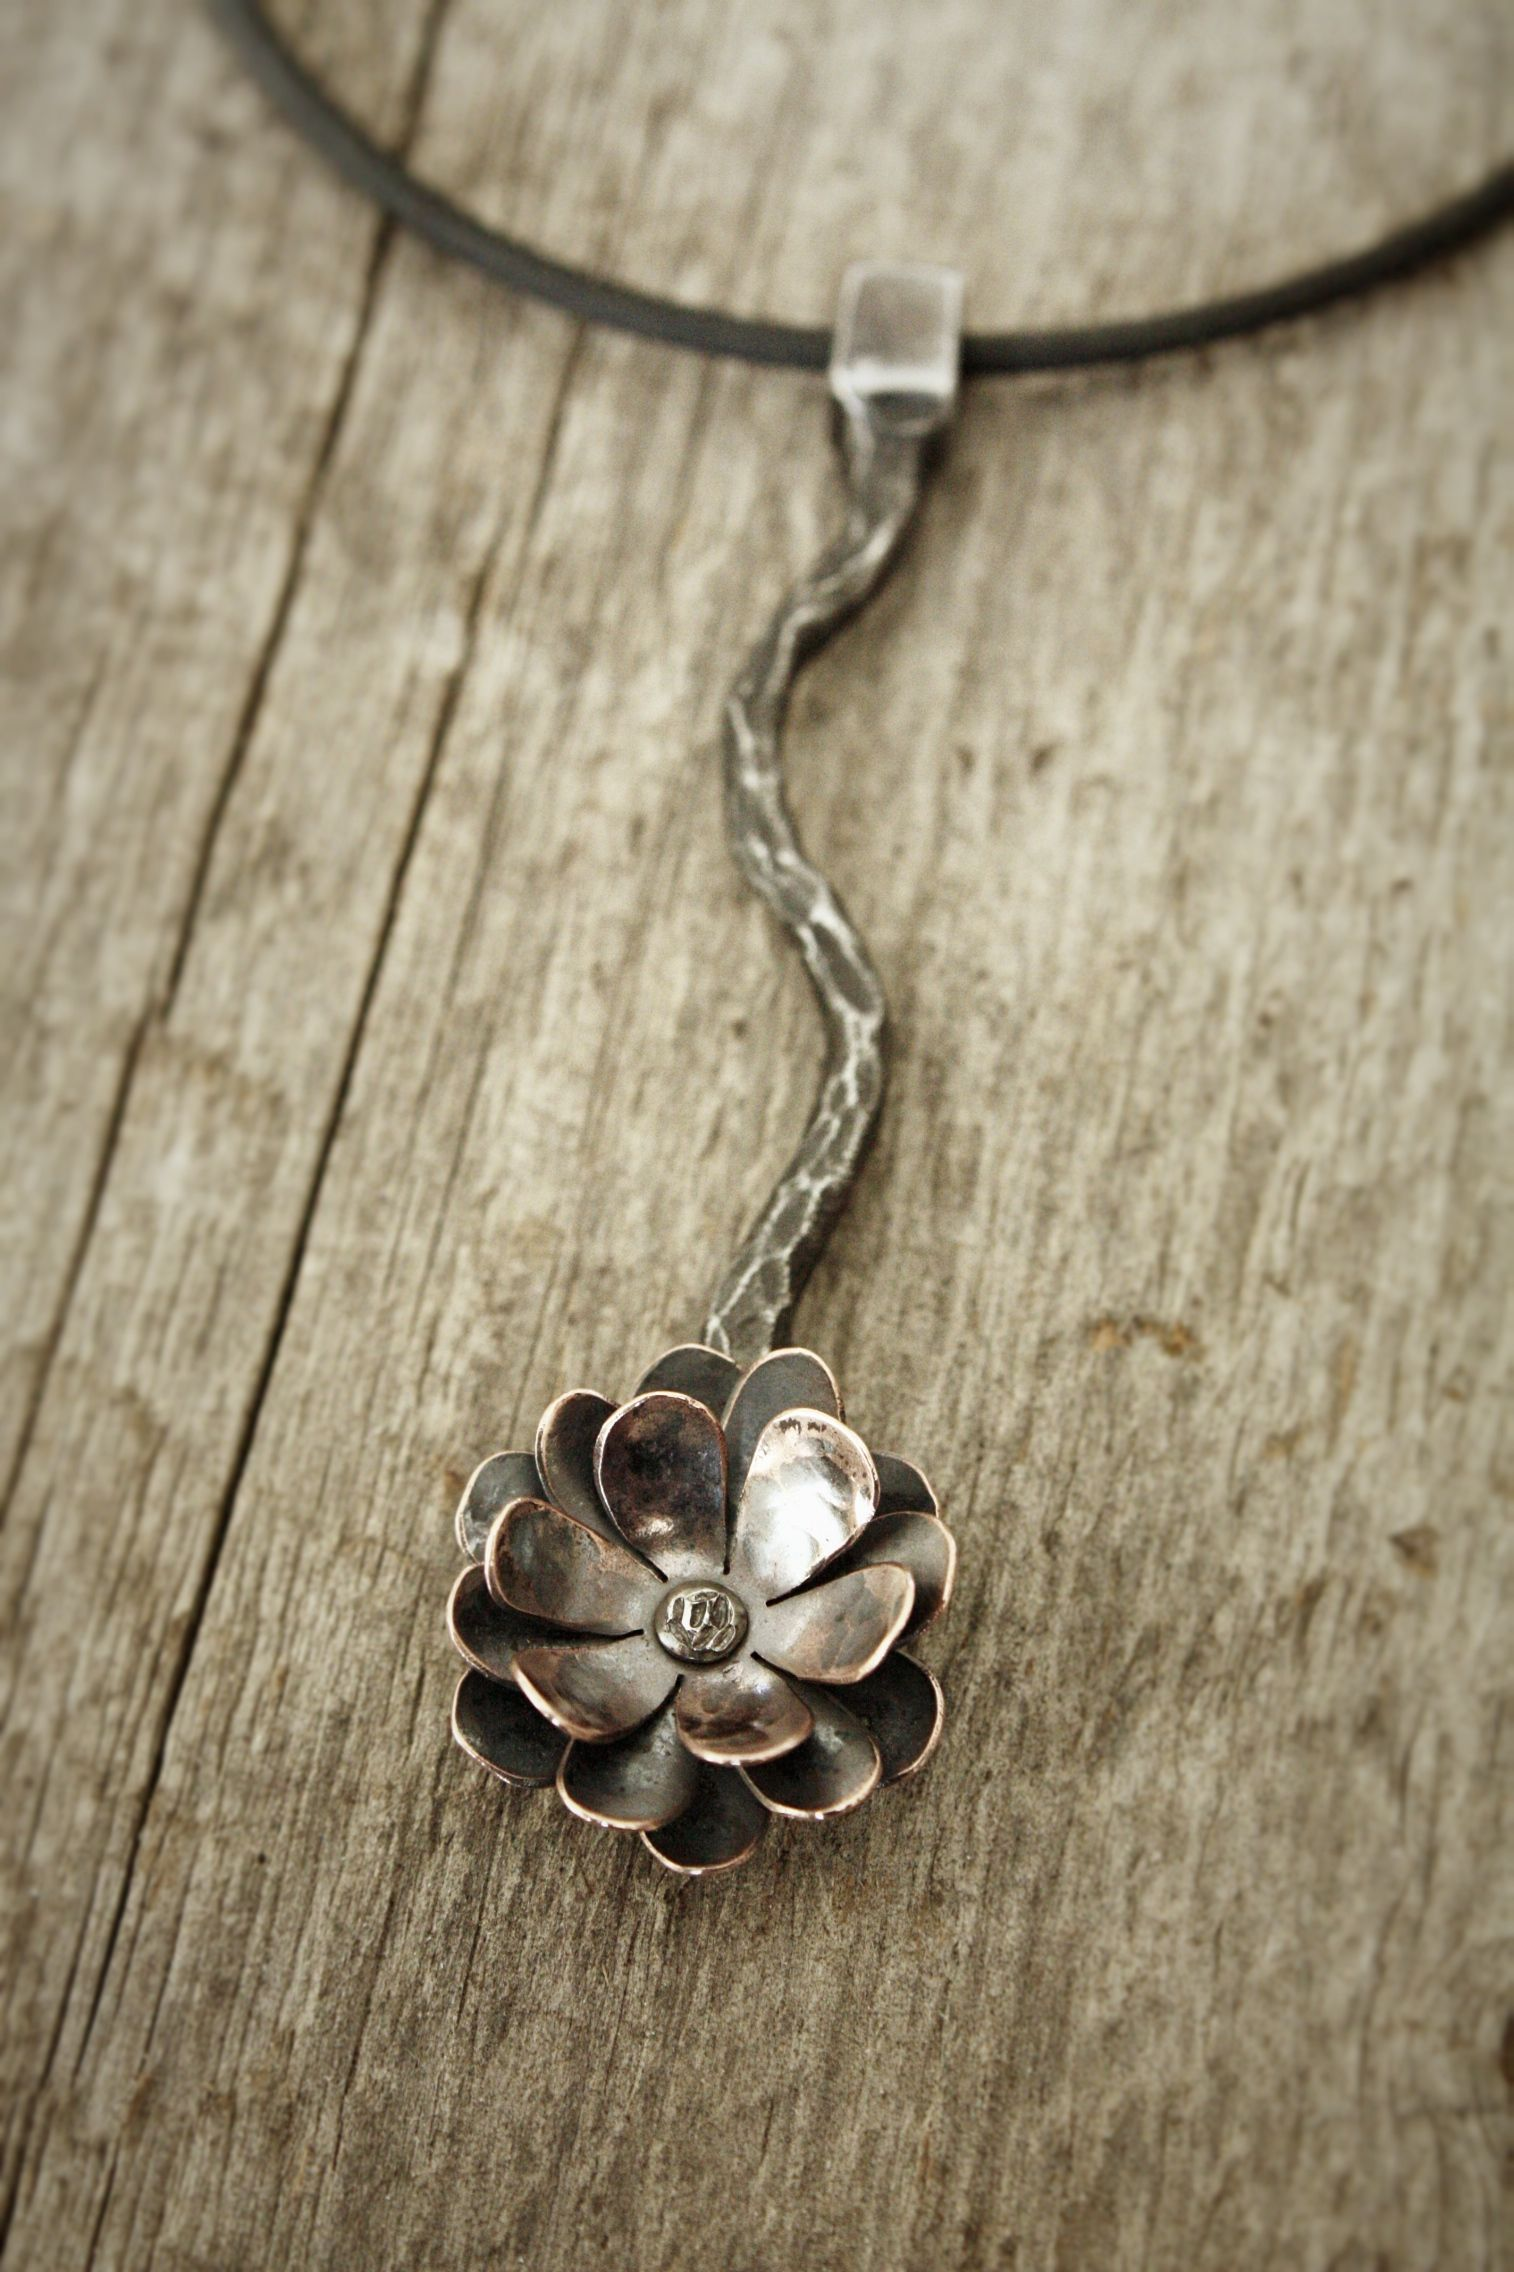 Flower Pendant Forged Steel With Copper Delicate Looking